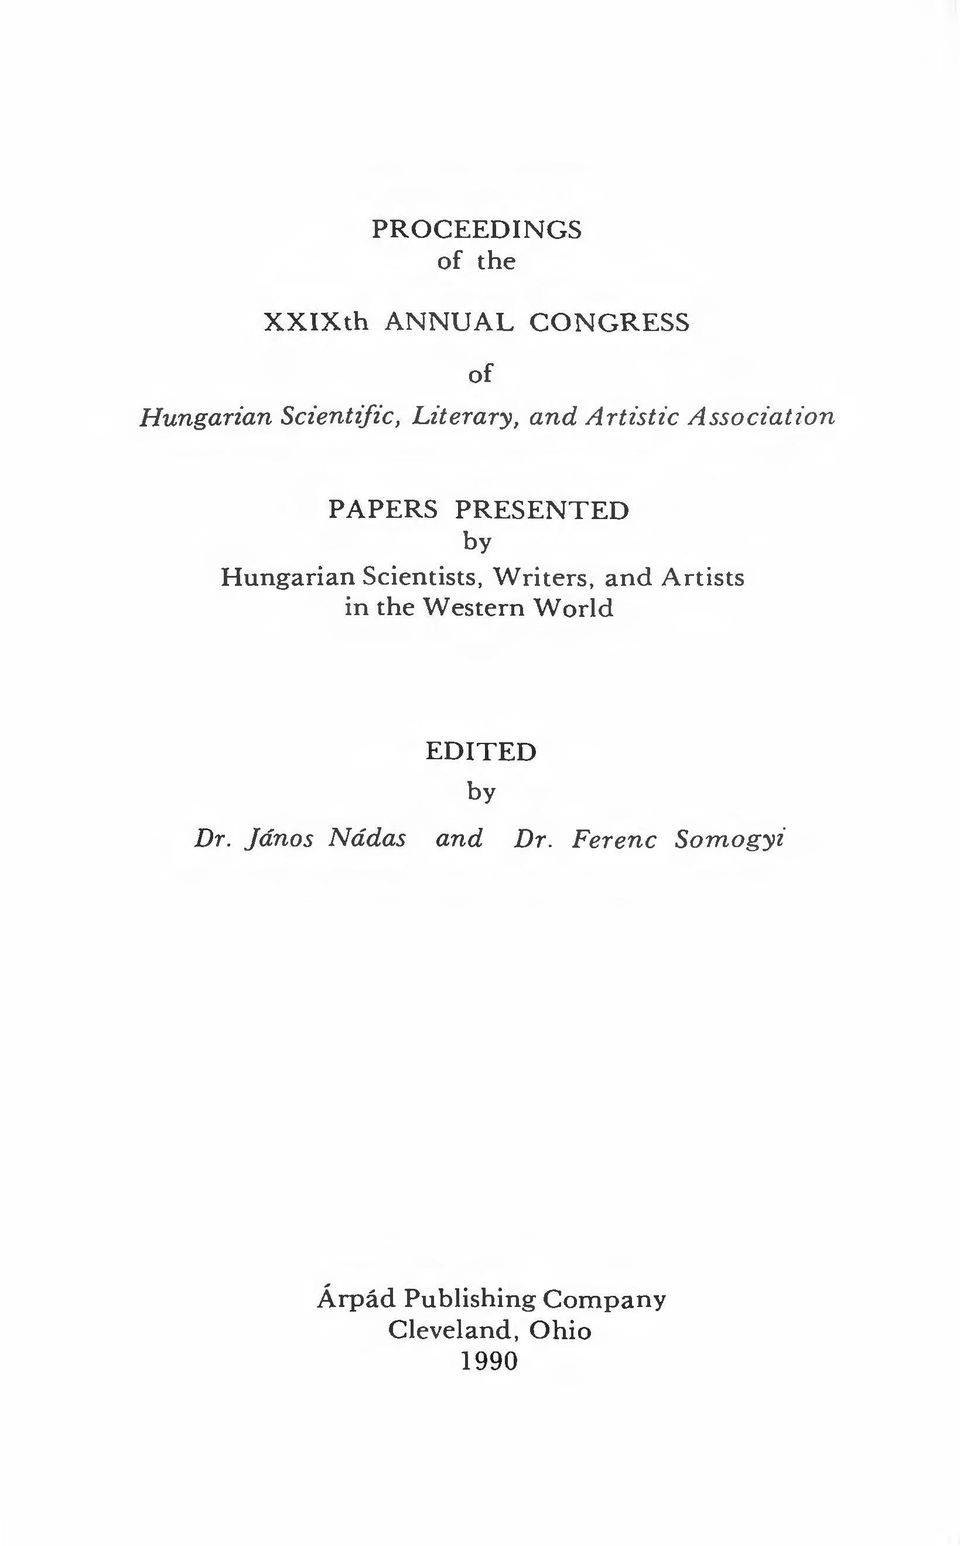 Scientists, Writers, and Artists in the Western World EDITED by Dr.